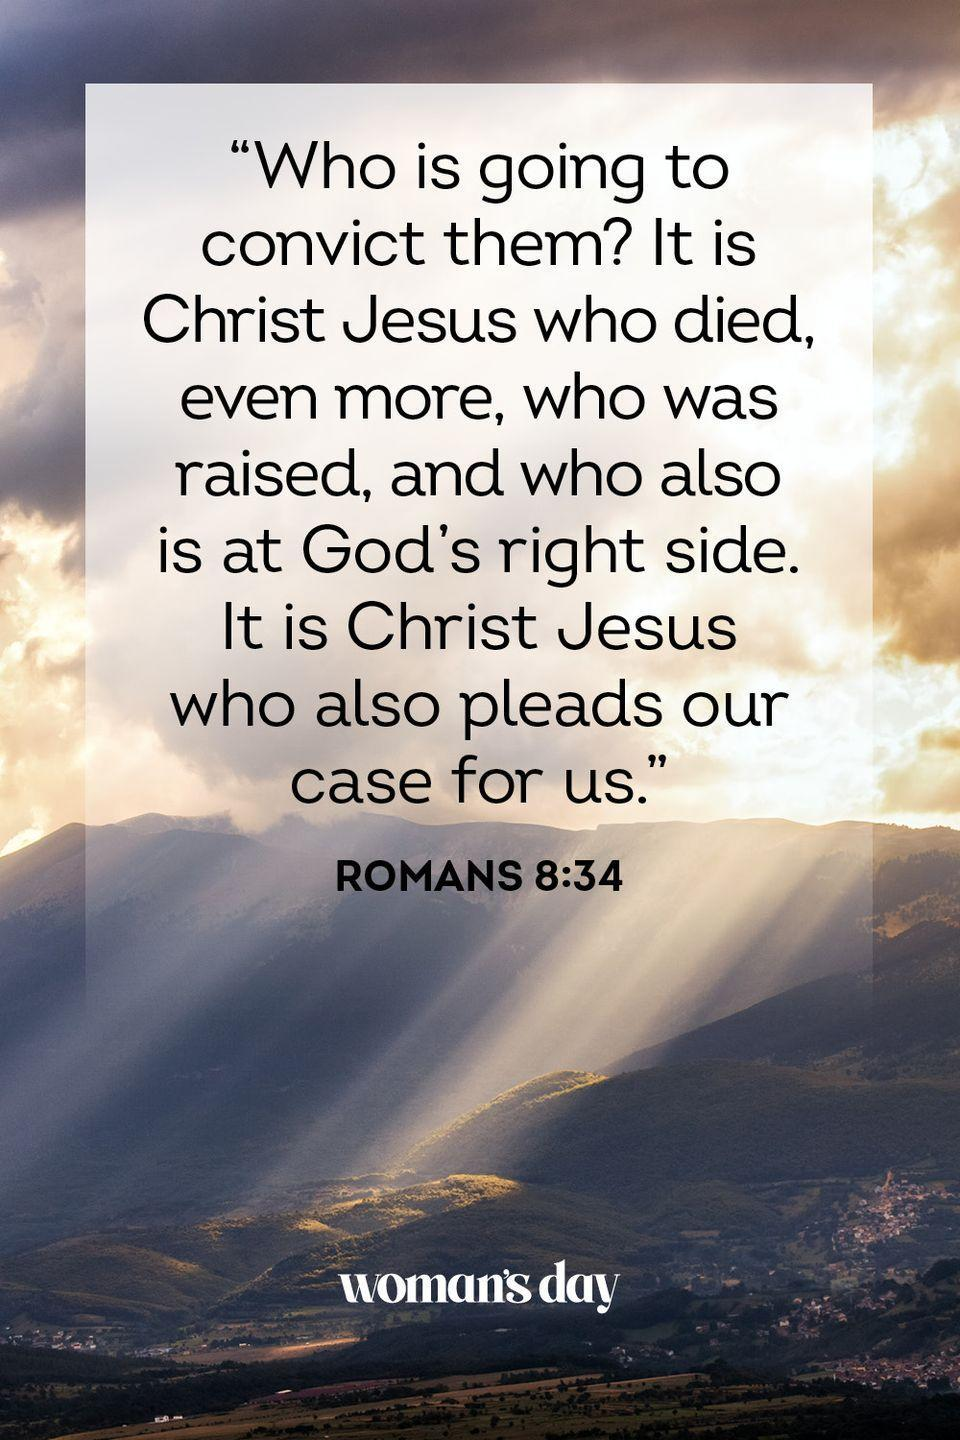 "<p>""Who is going to convict them? It is Christ Jesus who died, even more, who was raised, and who also is at God's right side. It is Christ Jesus who also pleads our case for us."" — Romans 8:34</p>"